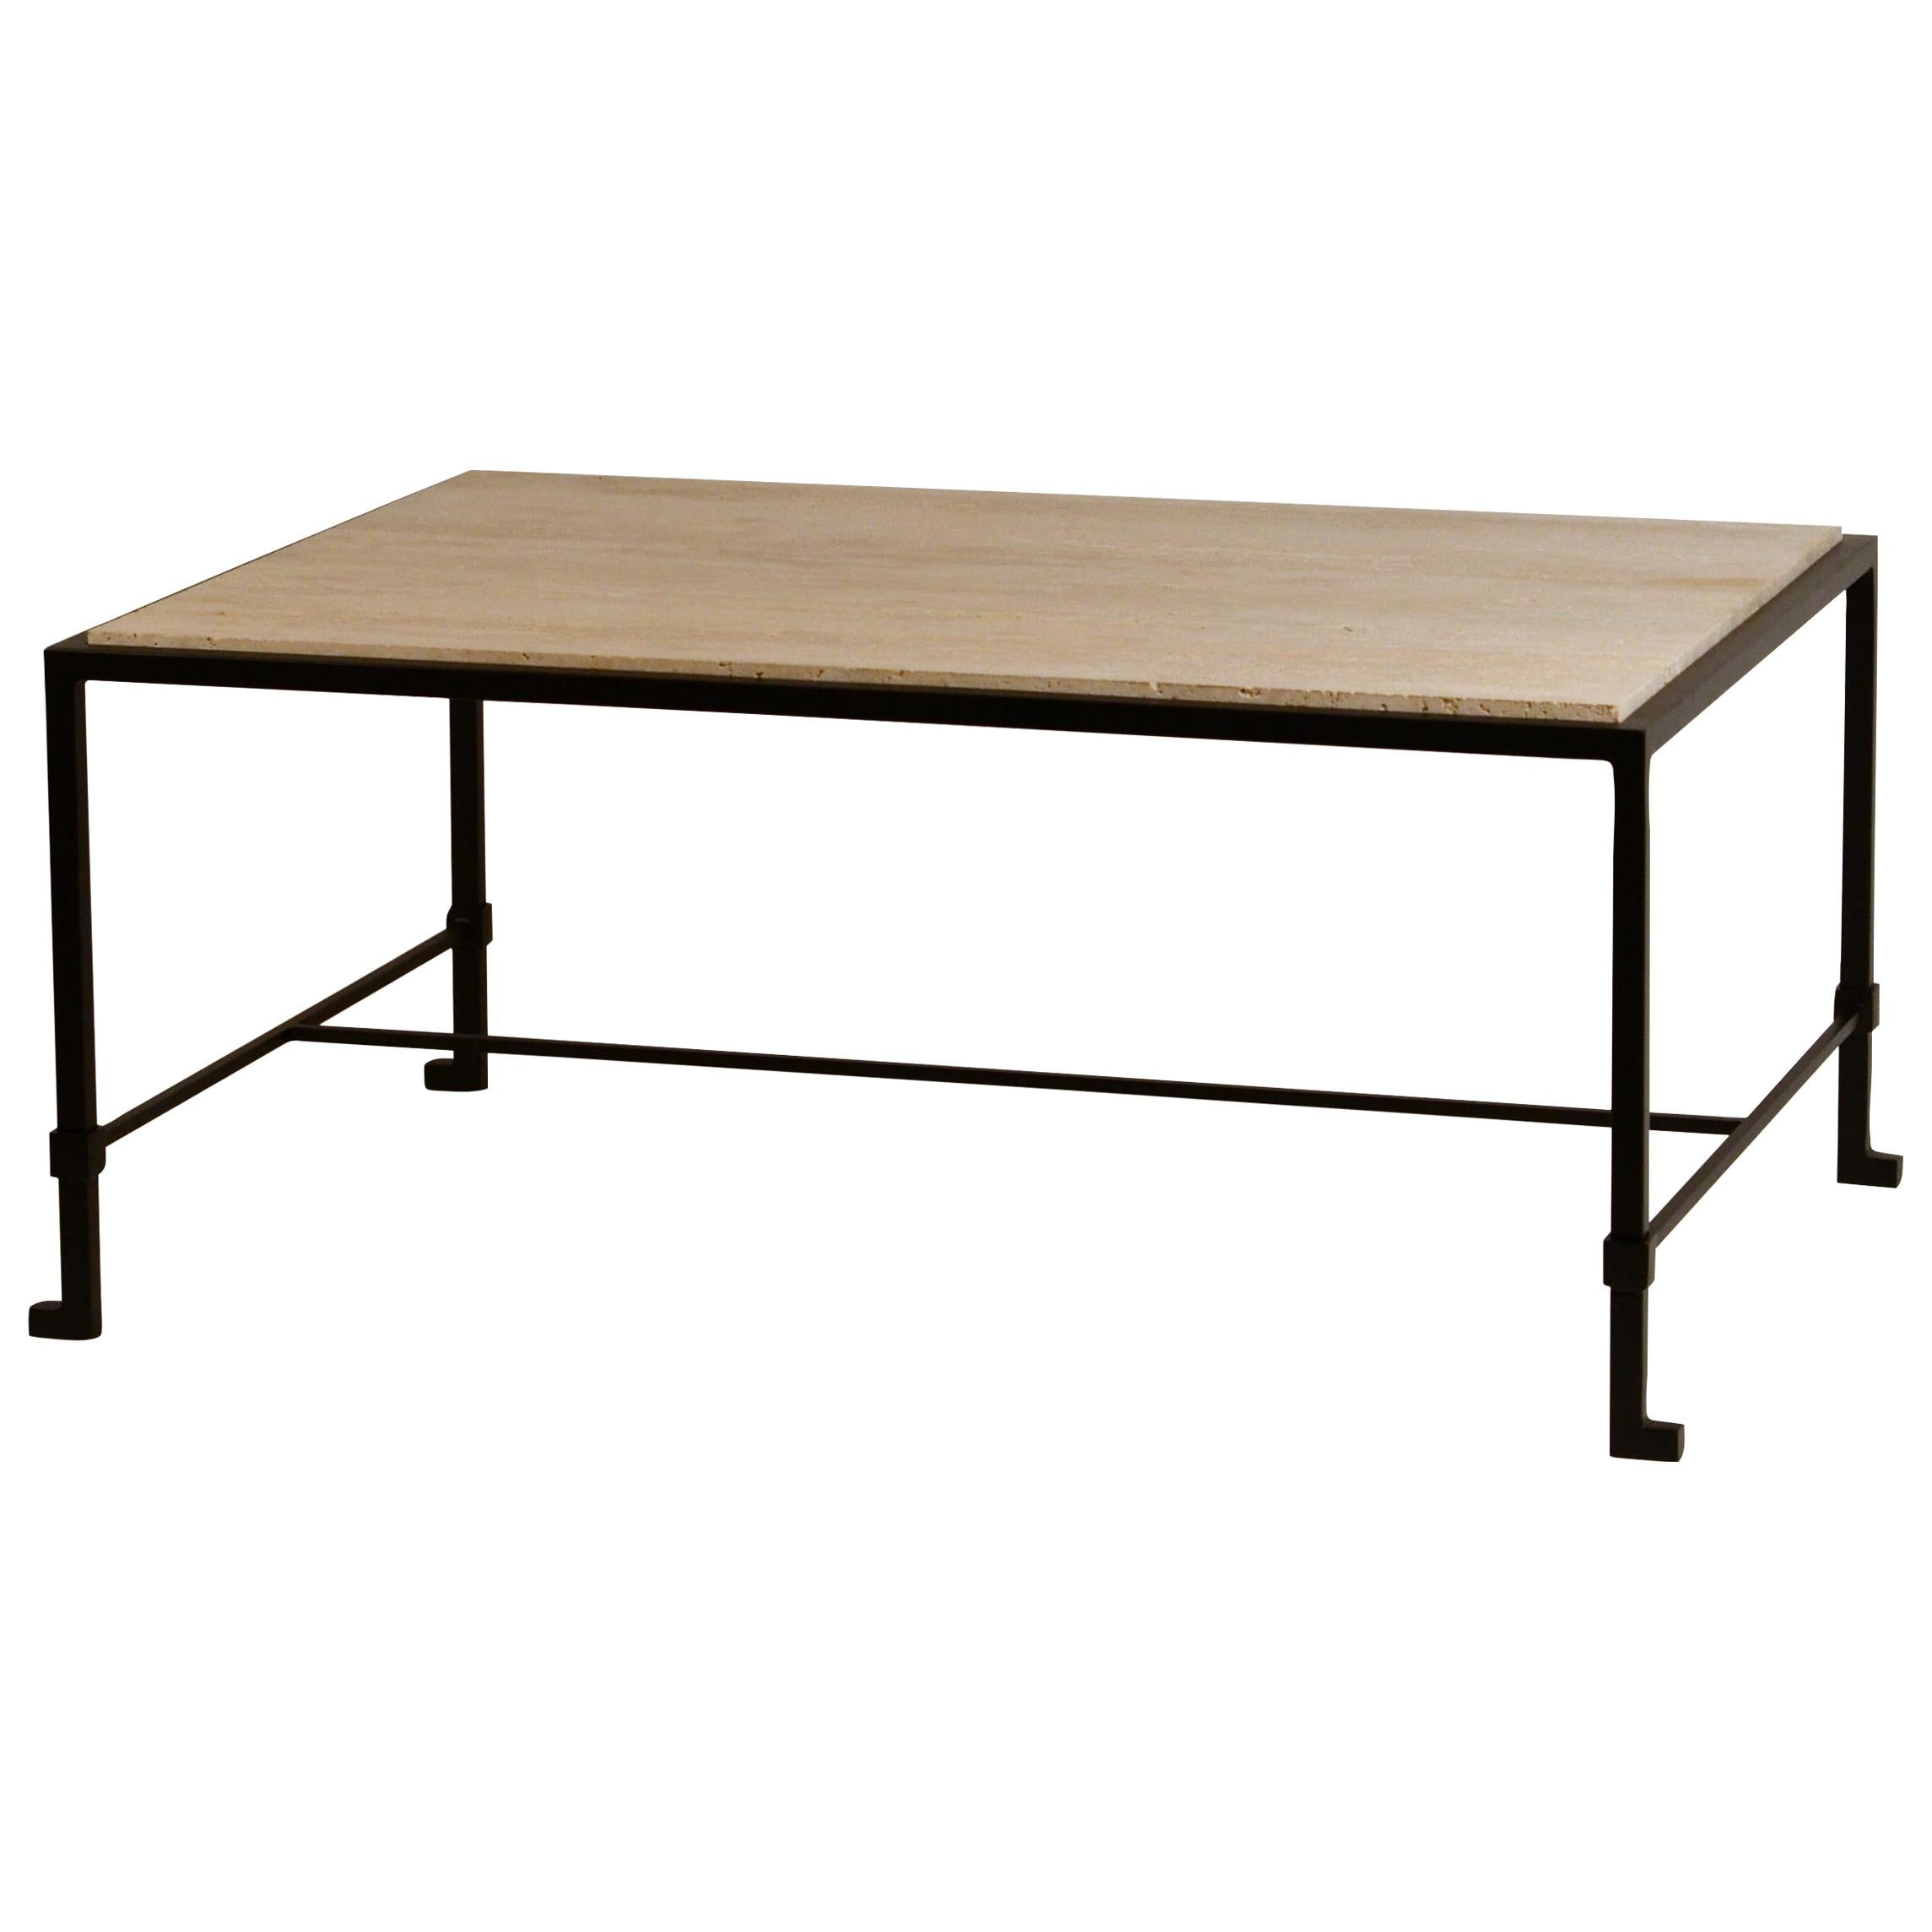 Chic 'Diagramme' Wrought Iron and Travertine Coffee Table